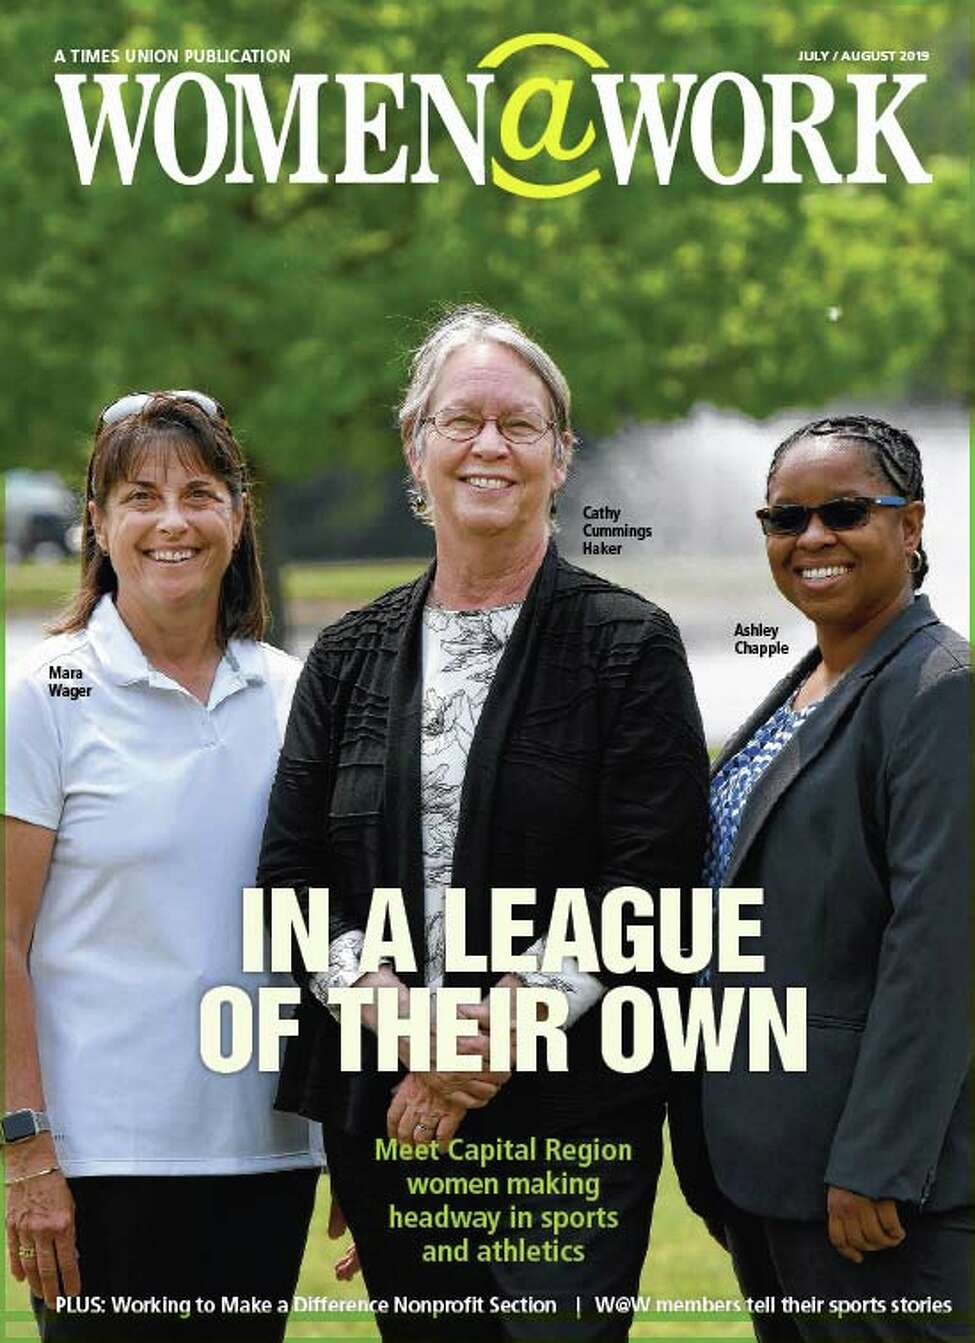 The July issue of Women@Work magazine features stories about Women in Athletics.